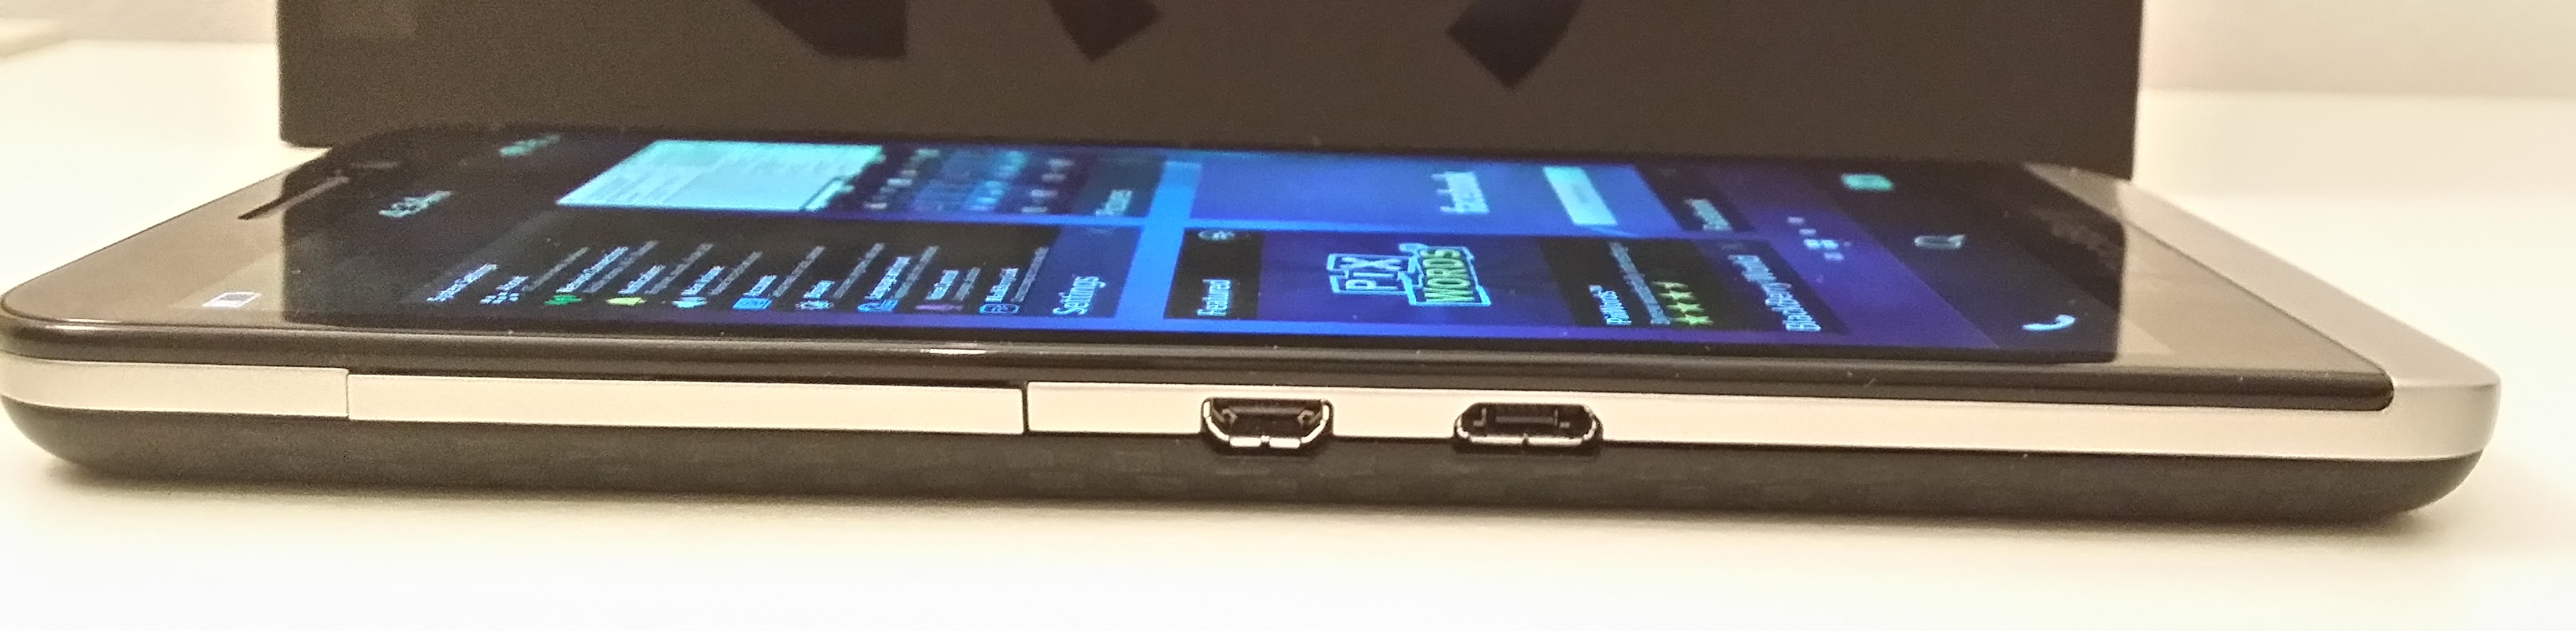 BlackBerry Z30 Review: What Exactly Is the Problem with This